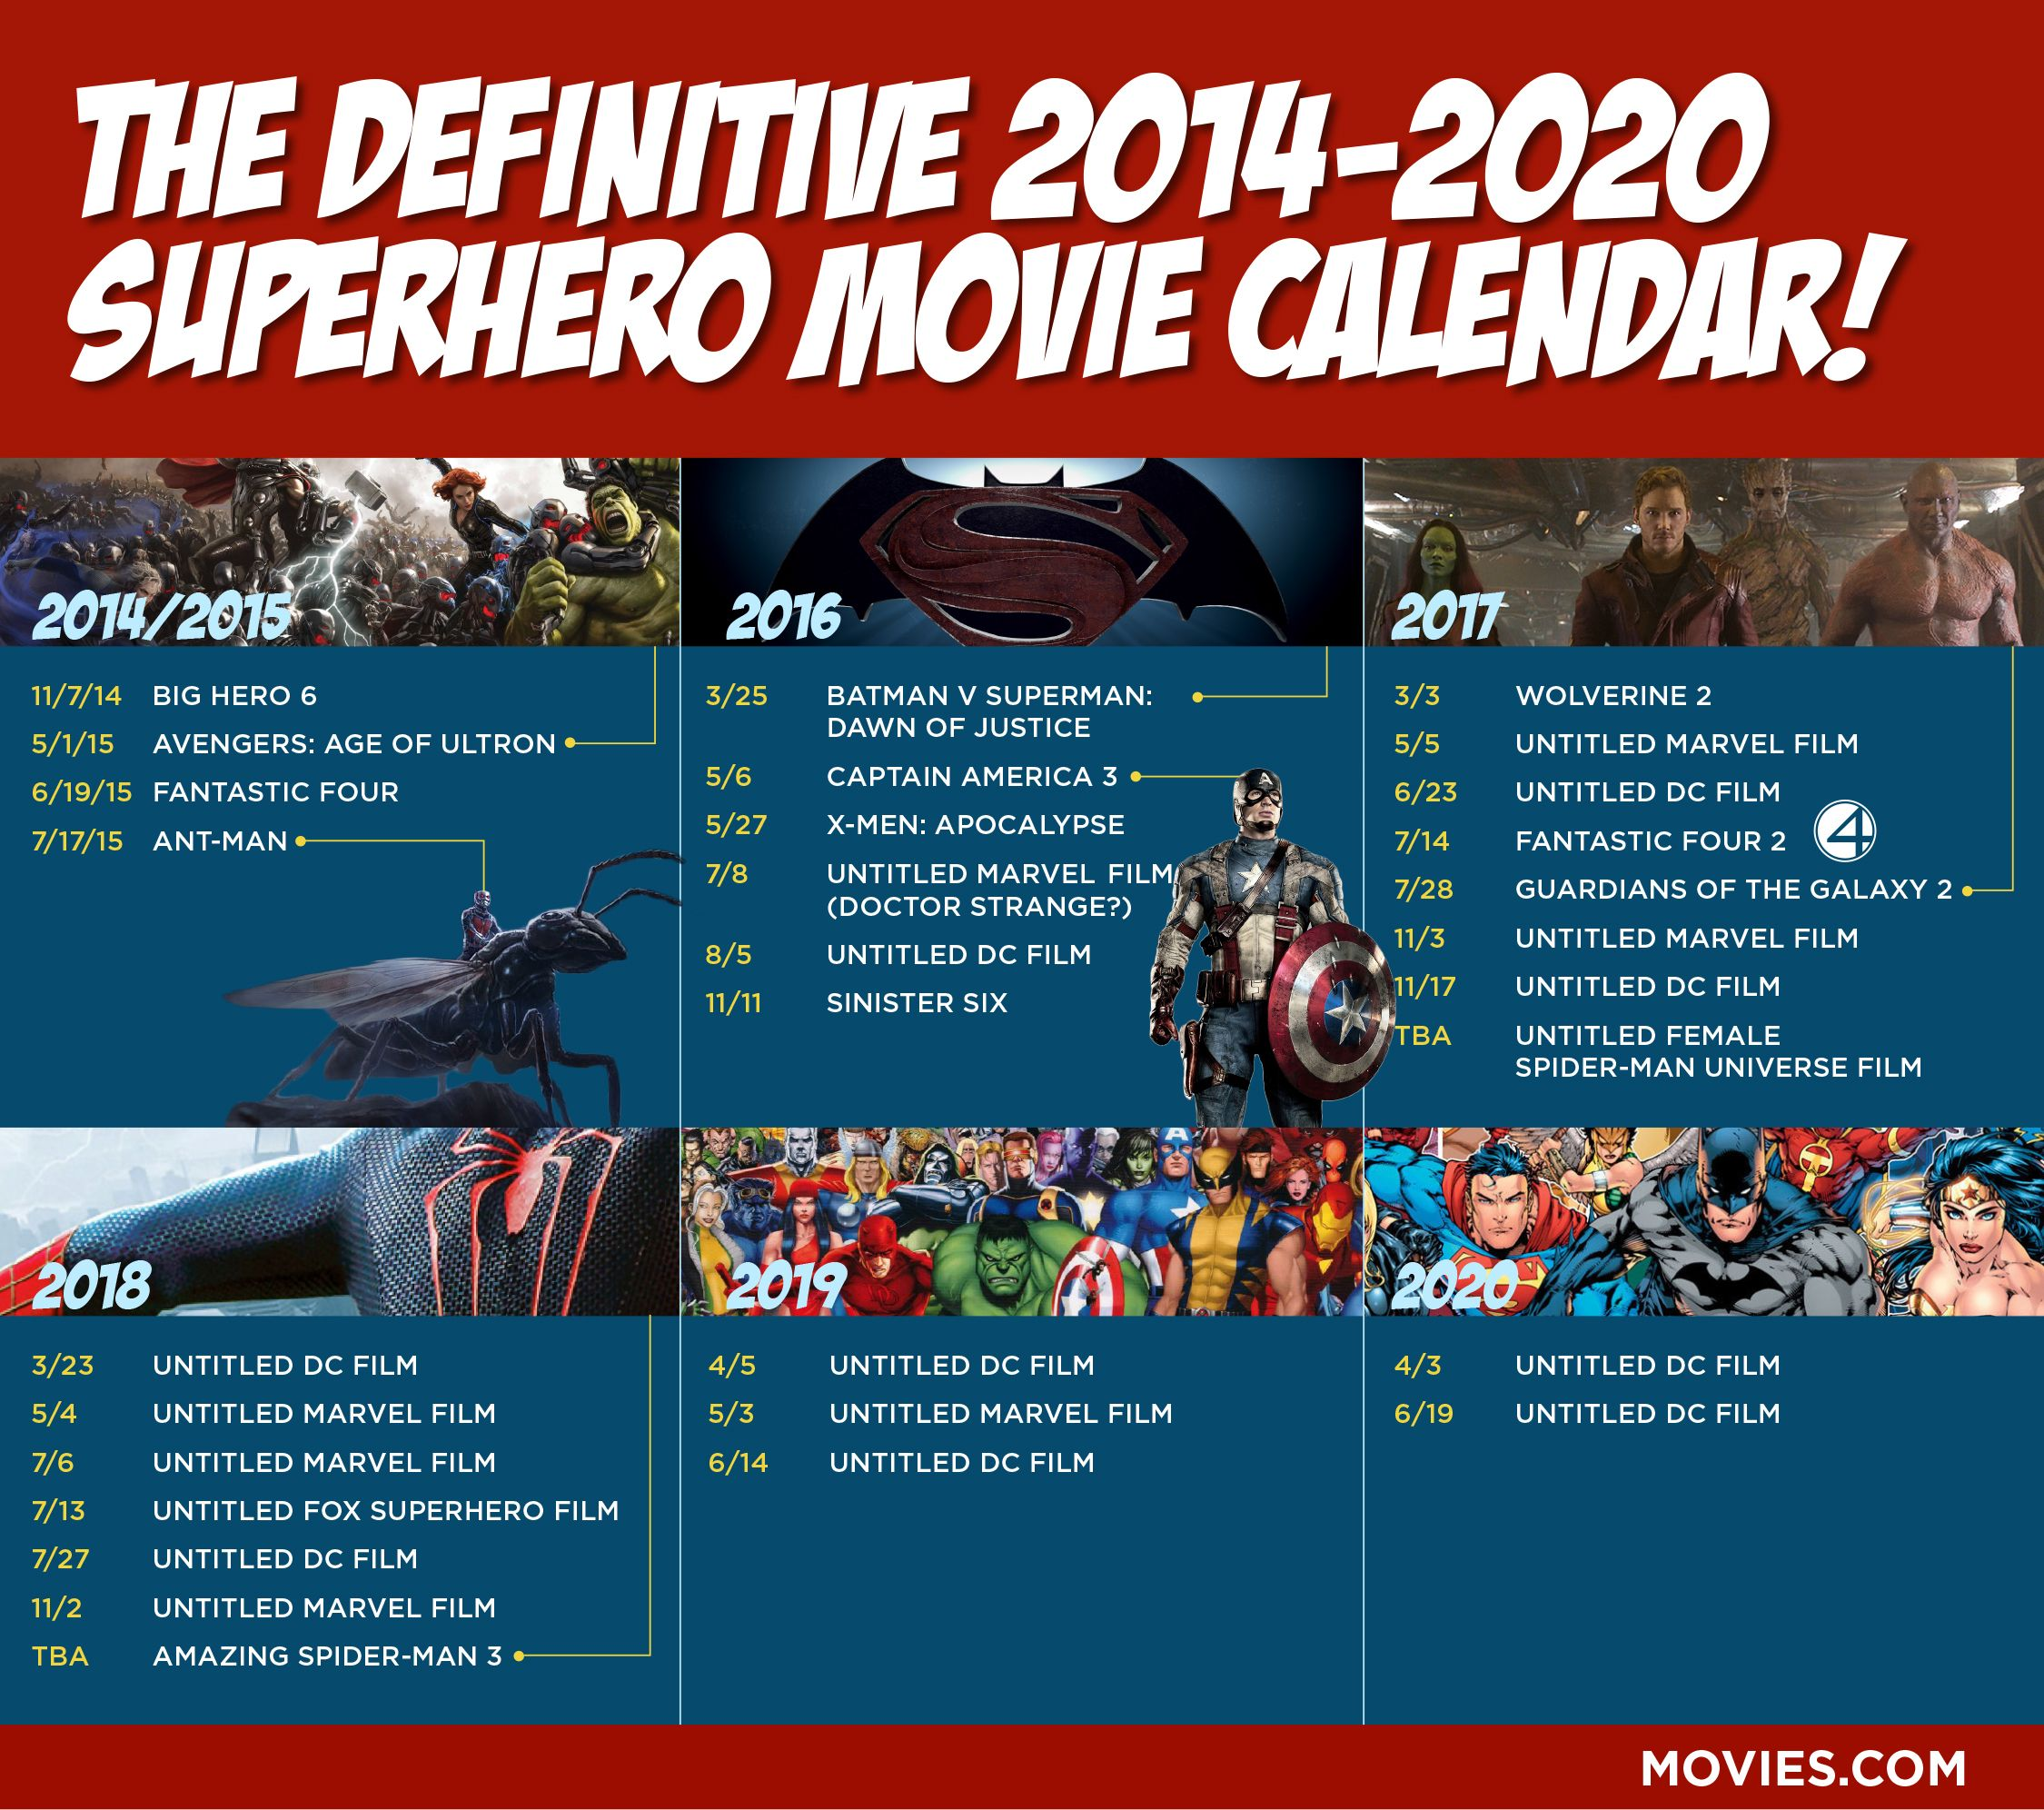 Calendar 2014 And 2020 Here's Your Definitive 2014 2020 Superhero Movie Calendar | Movie